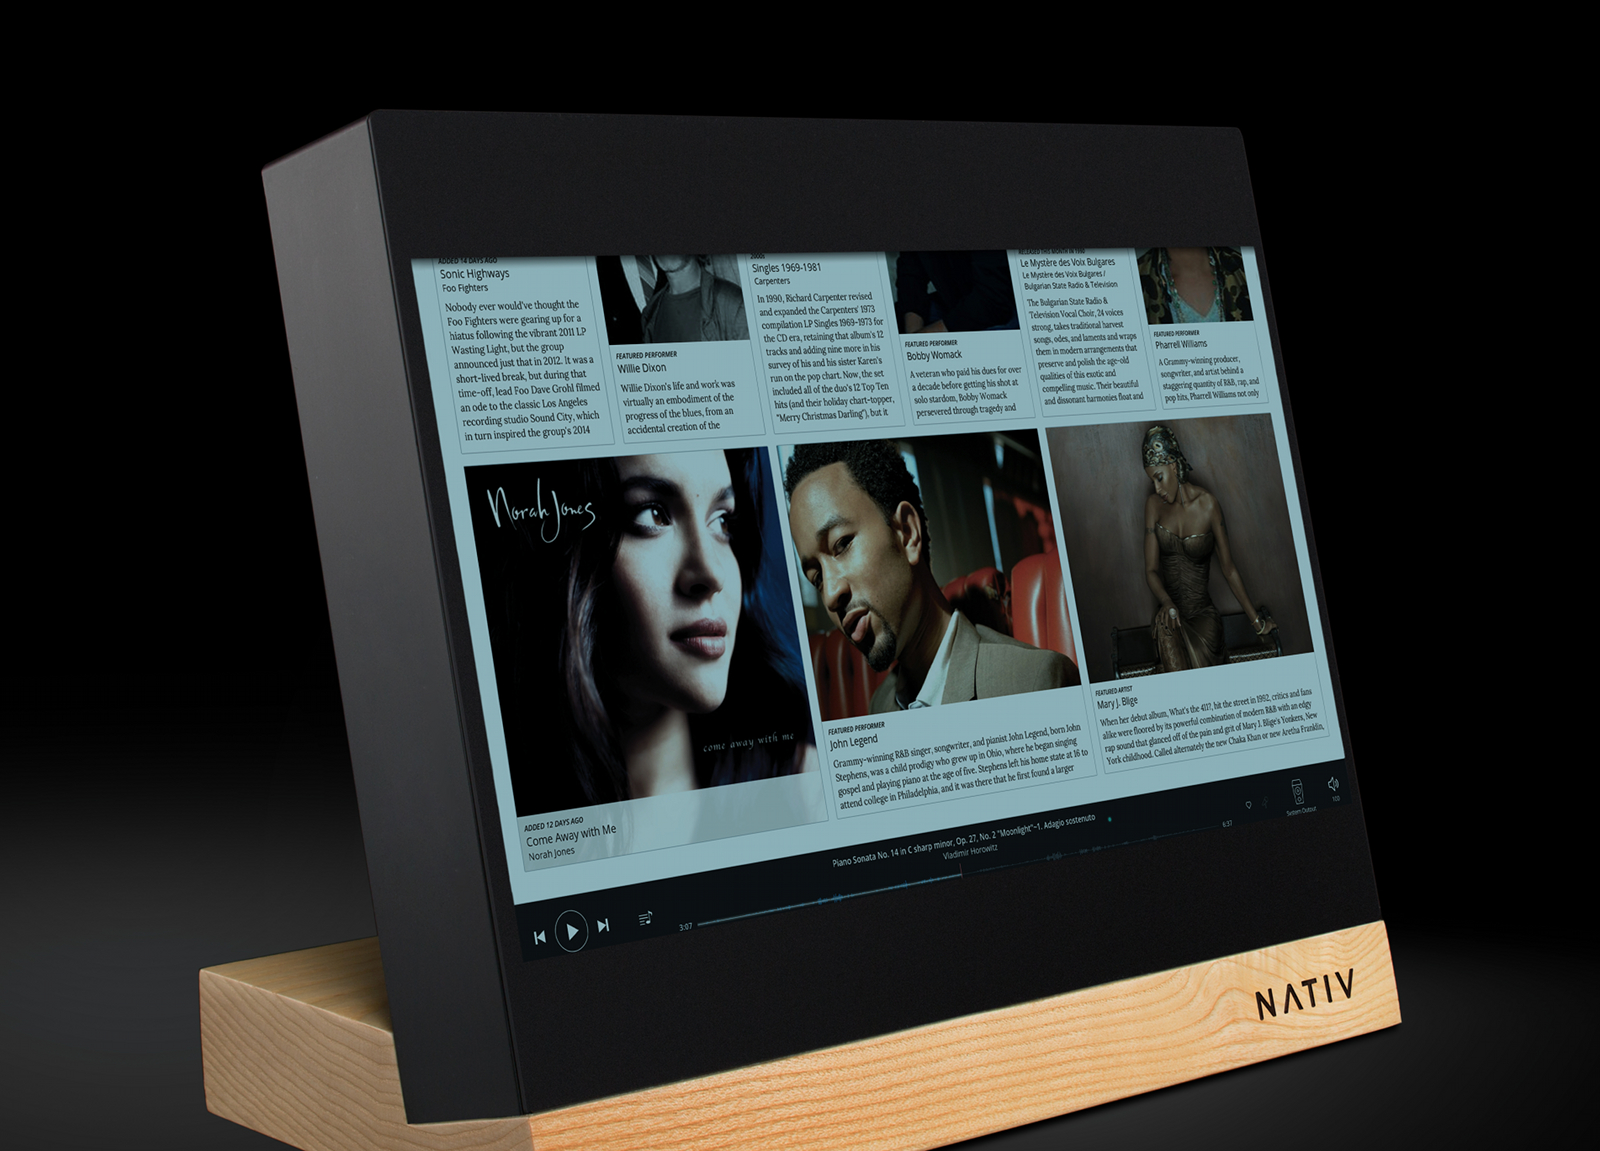 Nativ-Vita-High-Resolution-Music-Player-Roon